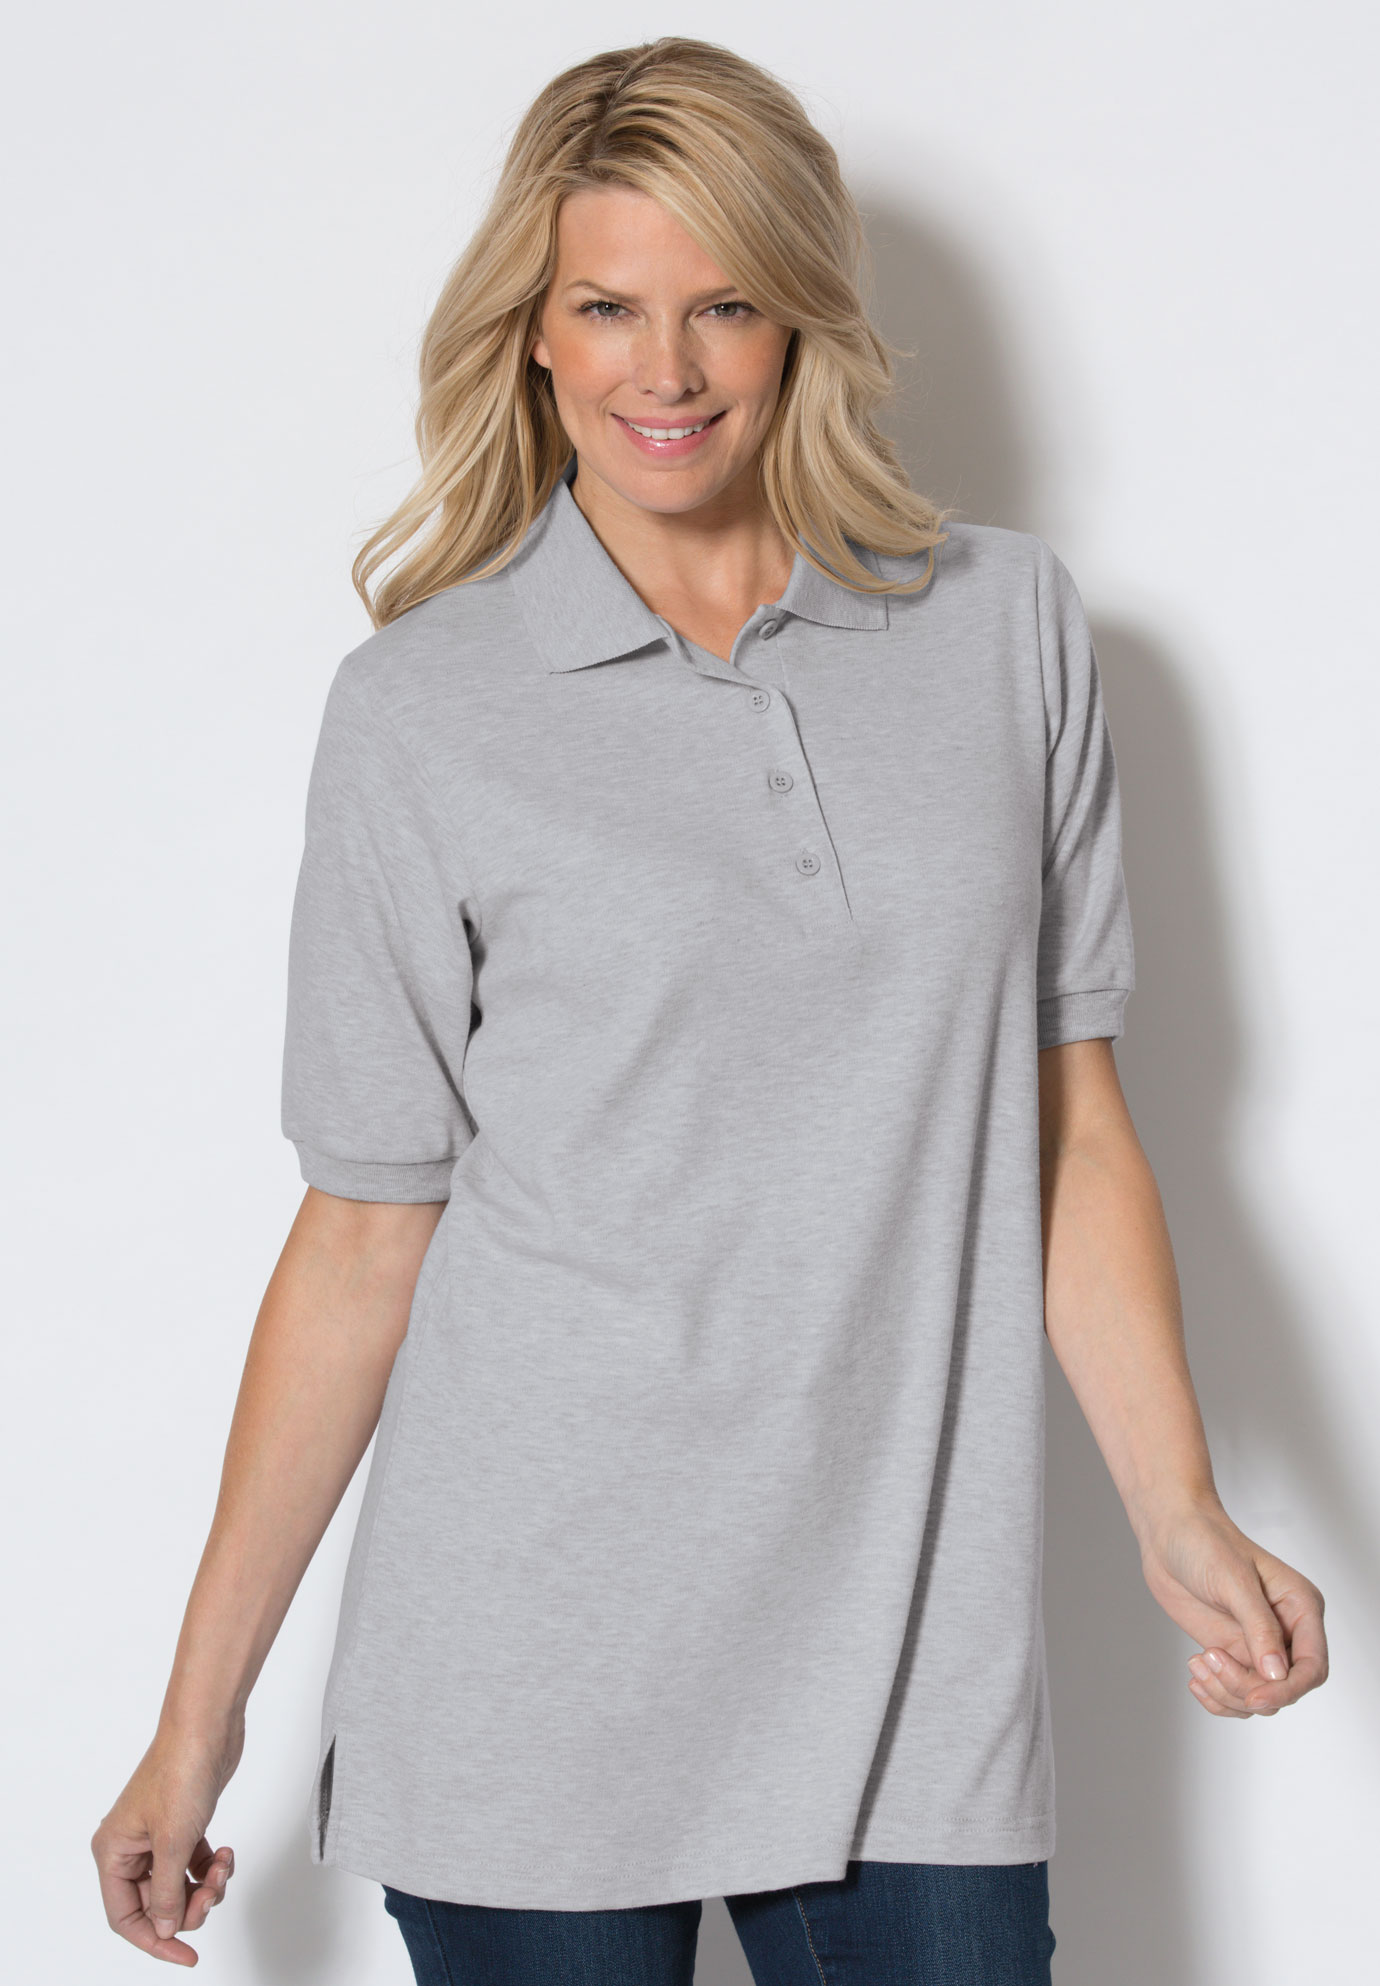 Top, tunic length, generous fit polo, HEATHER GREY, hi-res